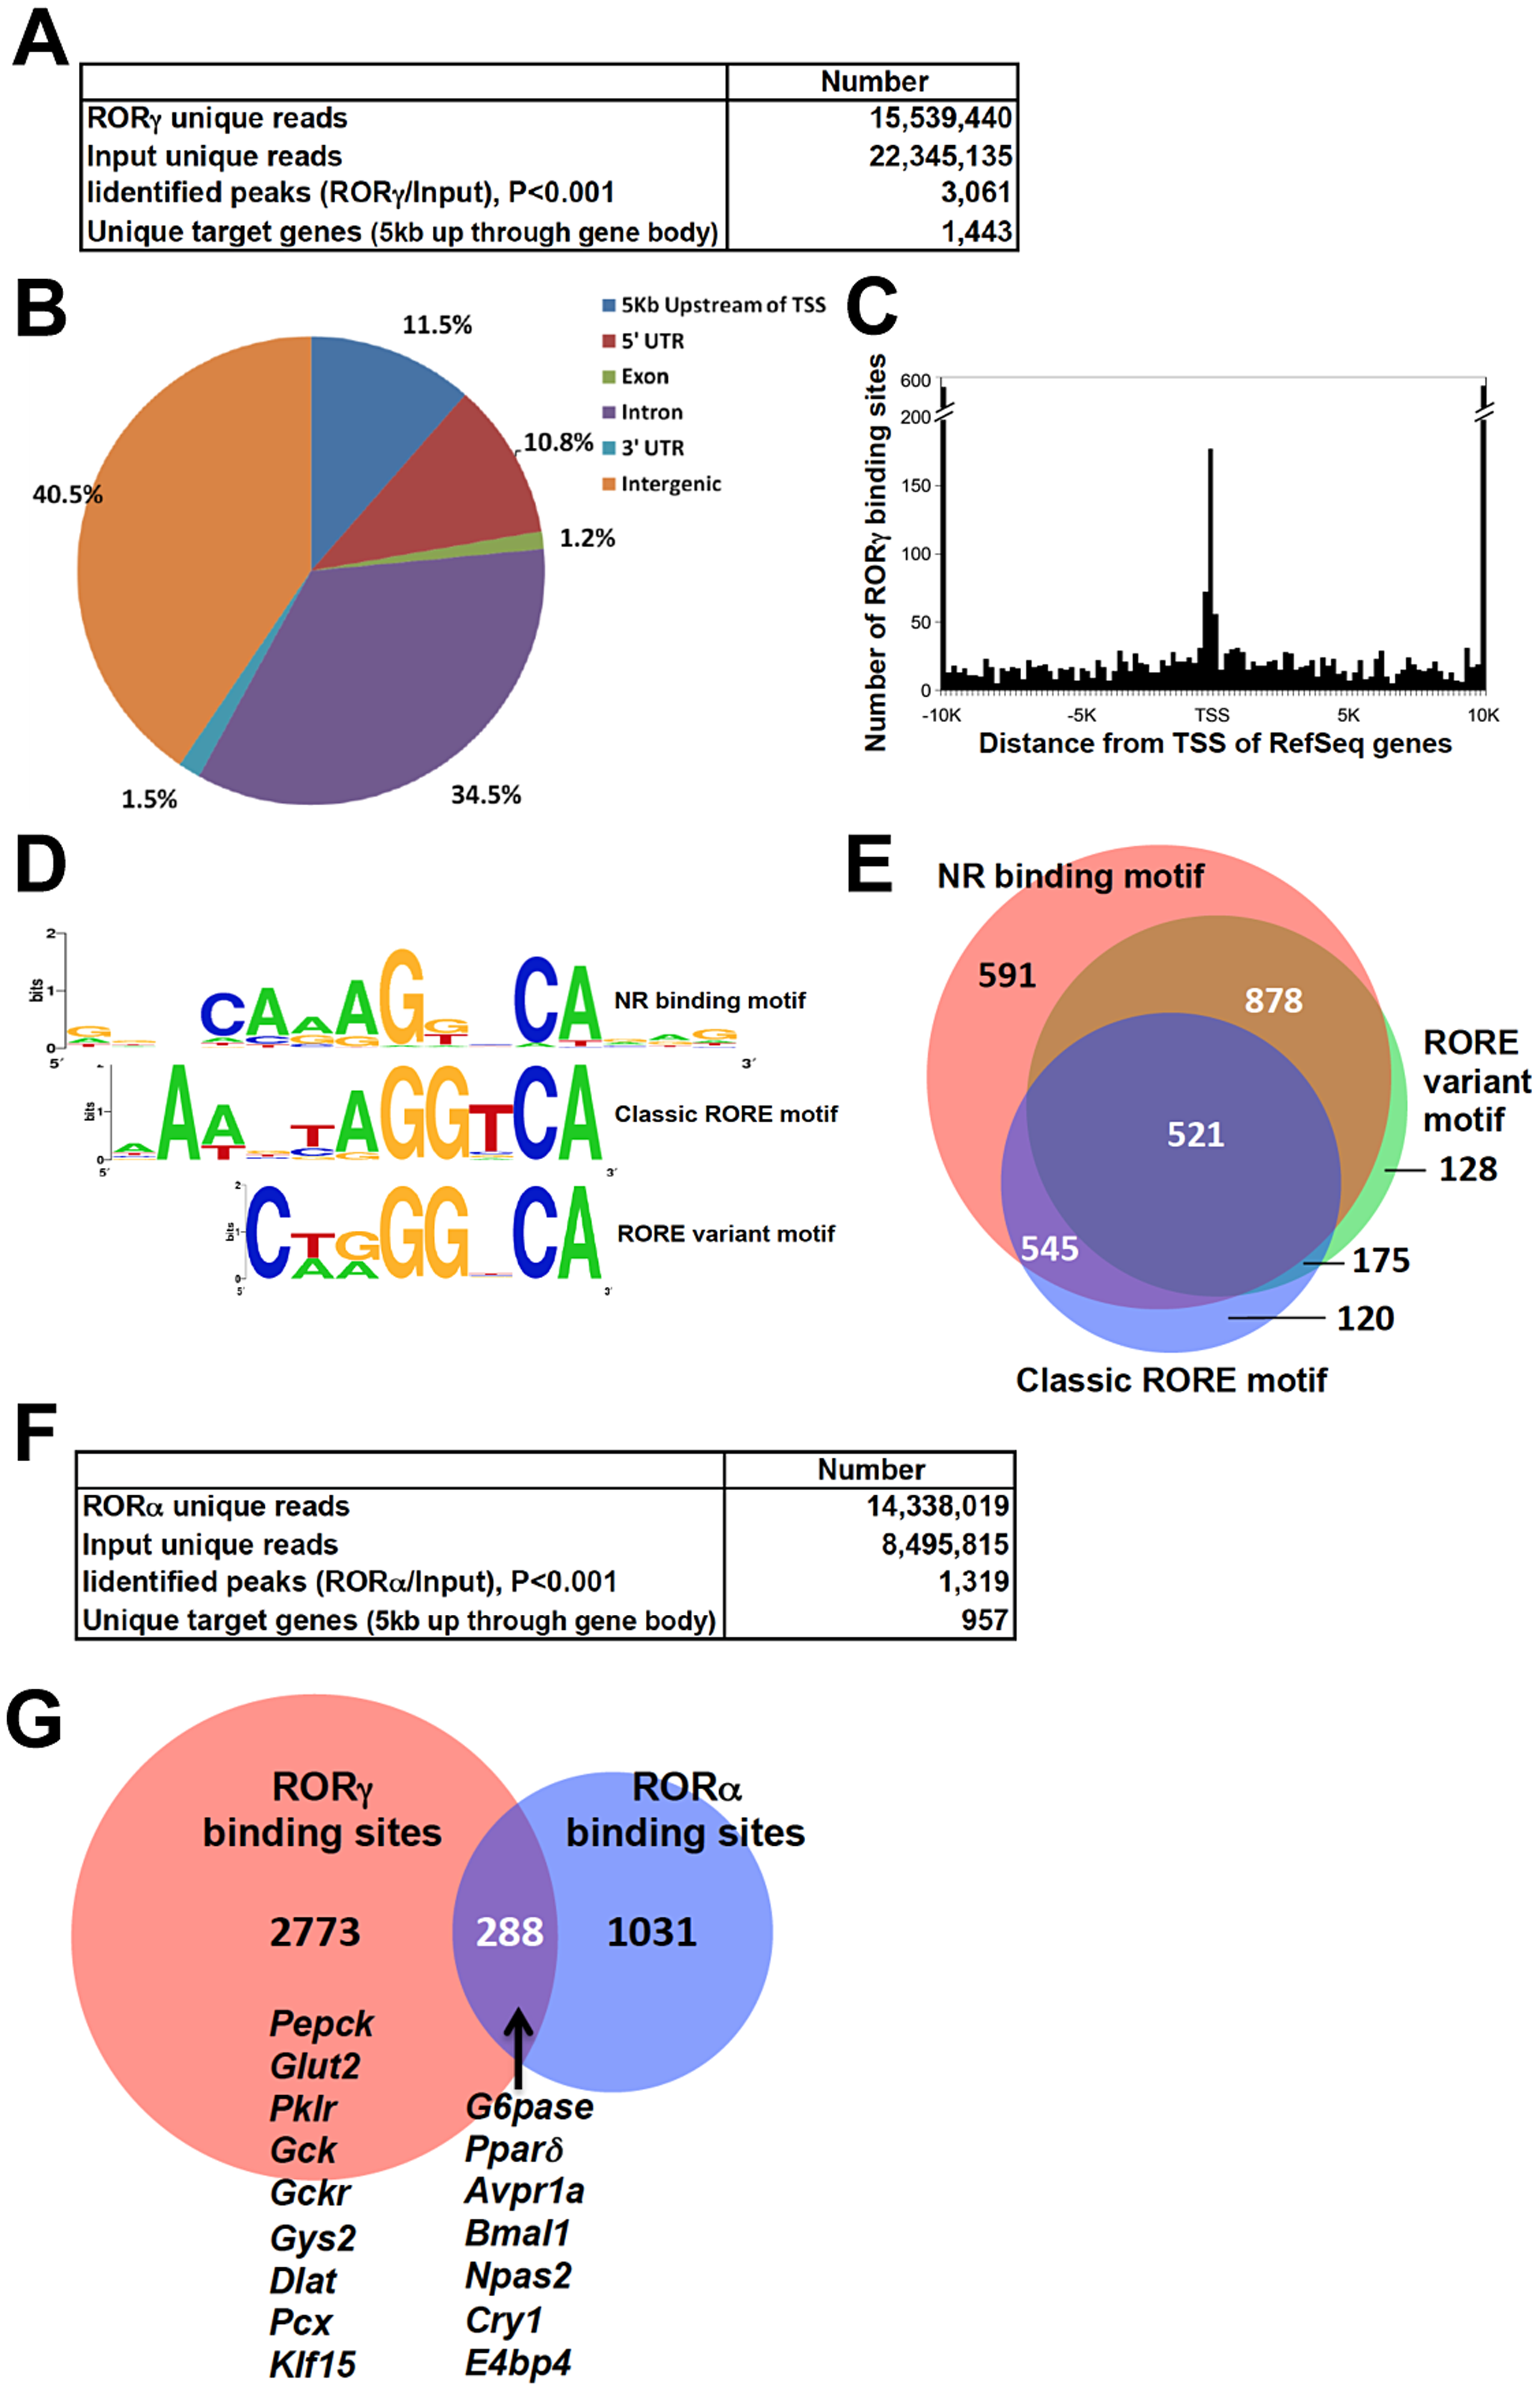 Genome-wide mapping of RORγ and RORα binding sites in mouse liver.